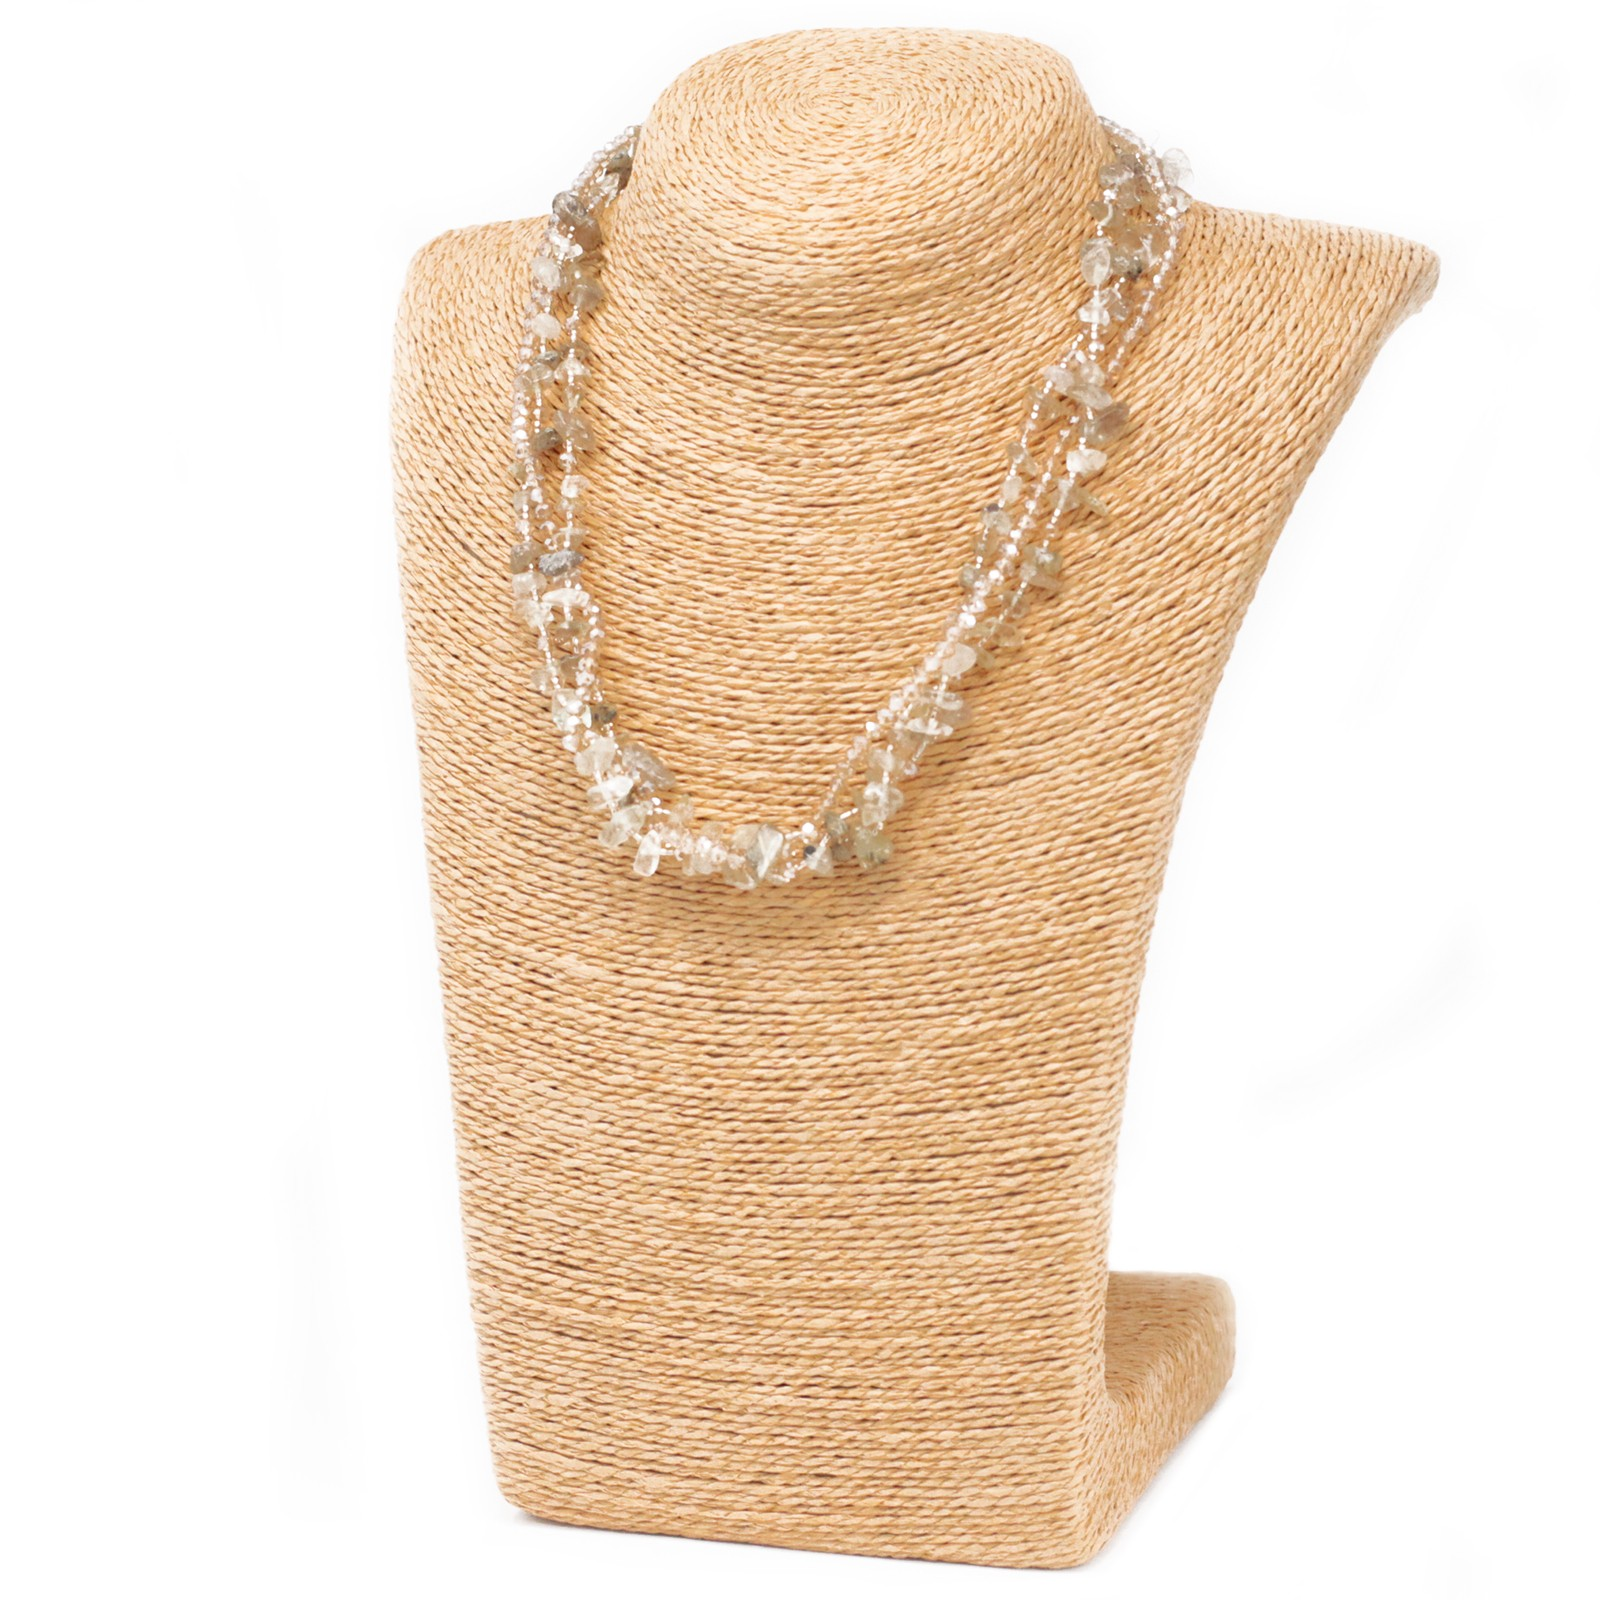 Chipstone & Bead Necklace - Smoky Quartz